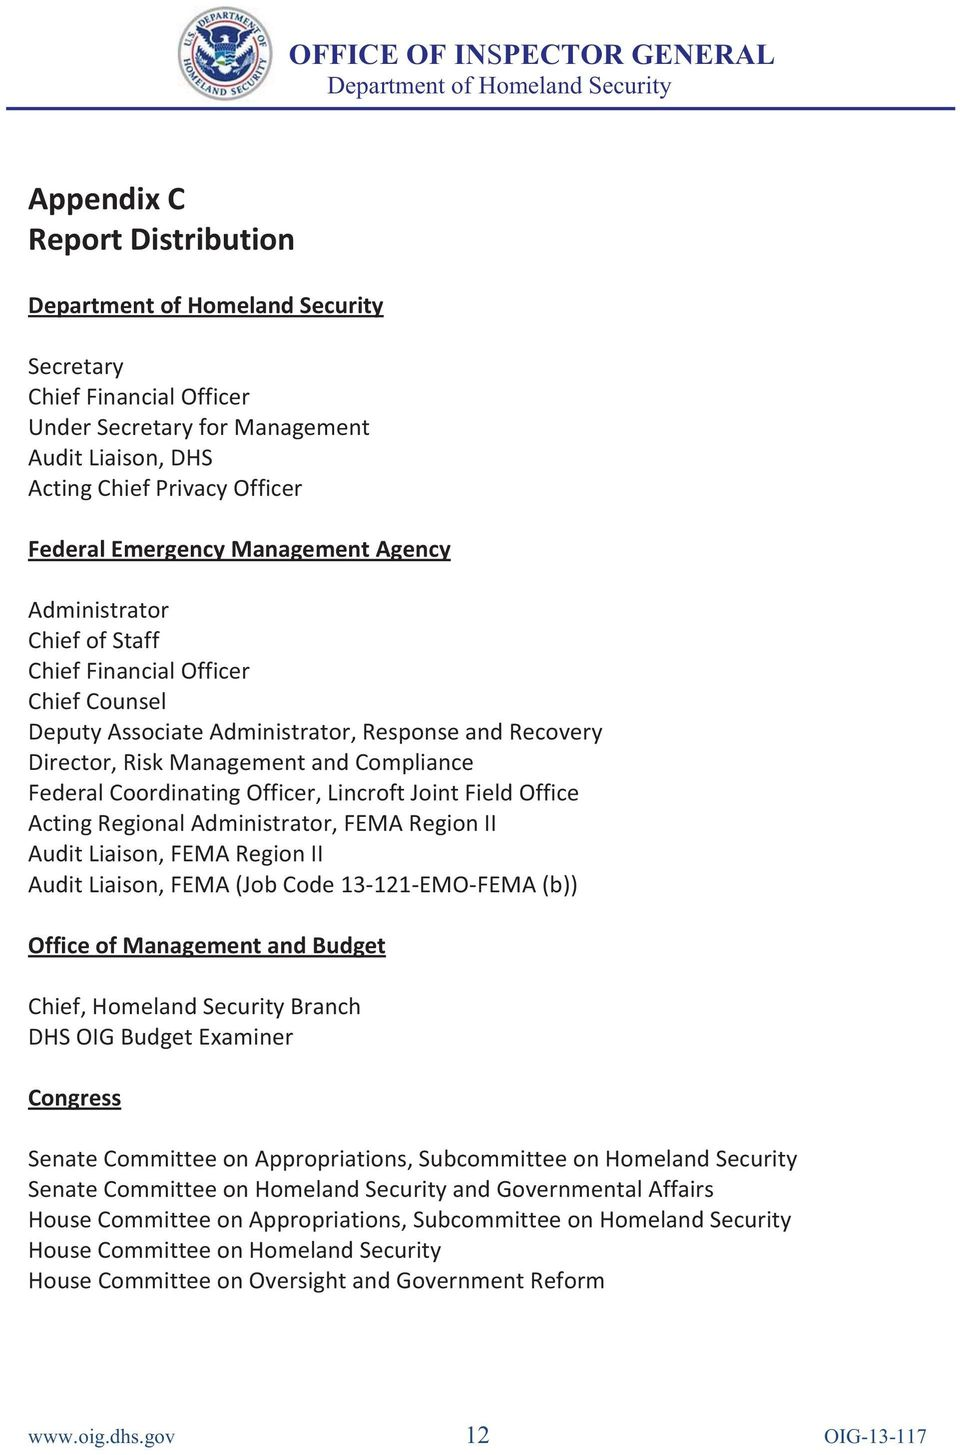 Acting Regional Administrator, FEMA Region II Audit Liaison, FEMA Region II Audit Liaison, FEMA (Job Code 13-121-EMO-FEMA (b)) Office of Management and Budget Chief, Homeland Security Branch DHS OIG